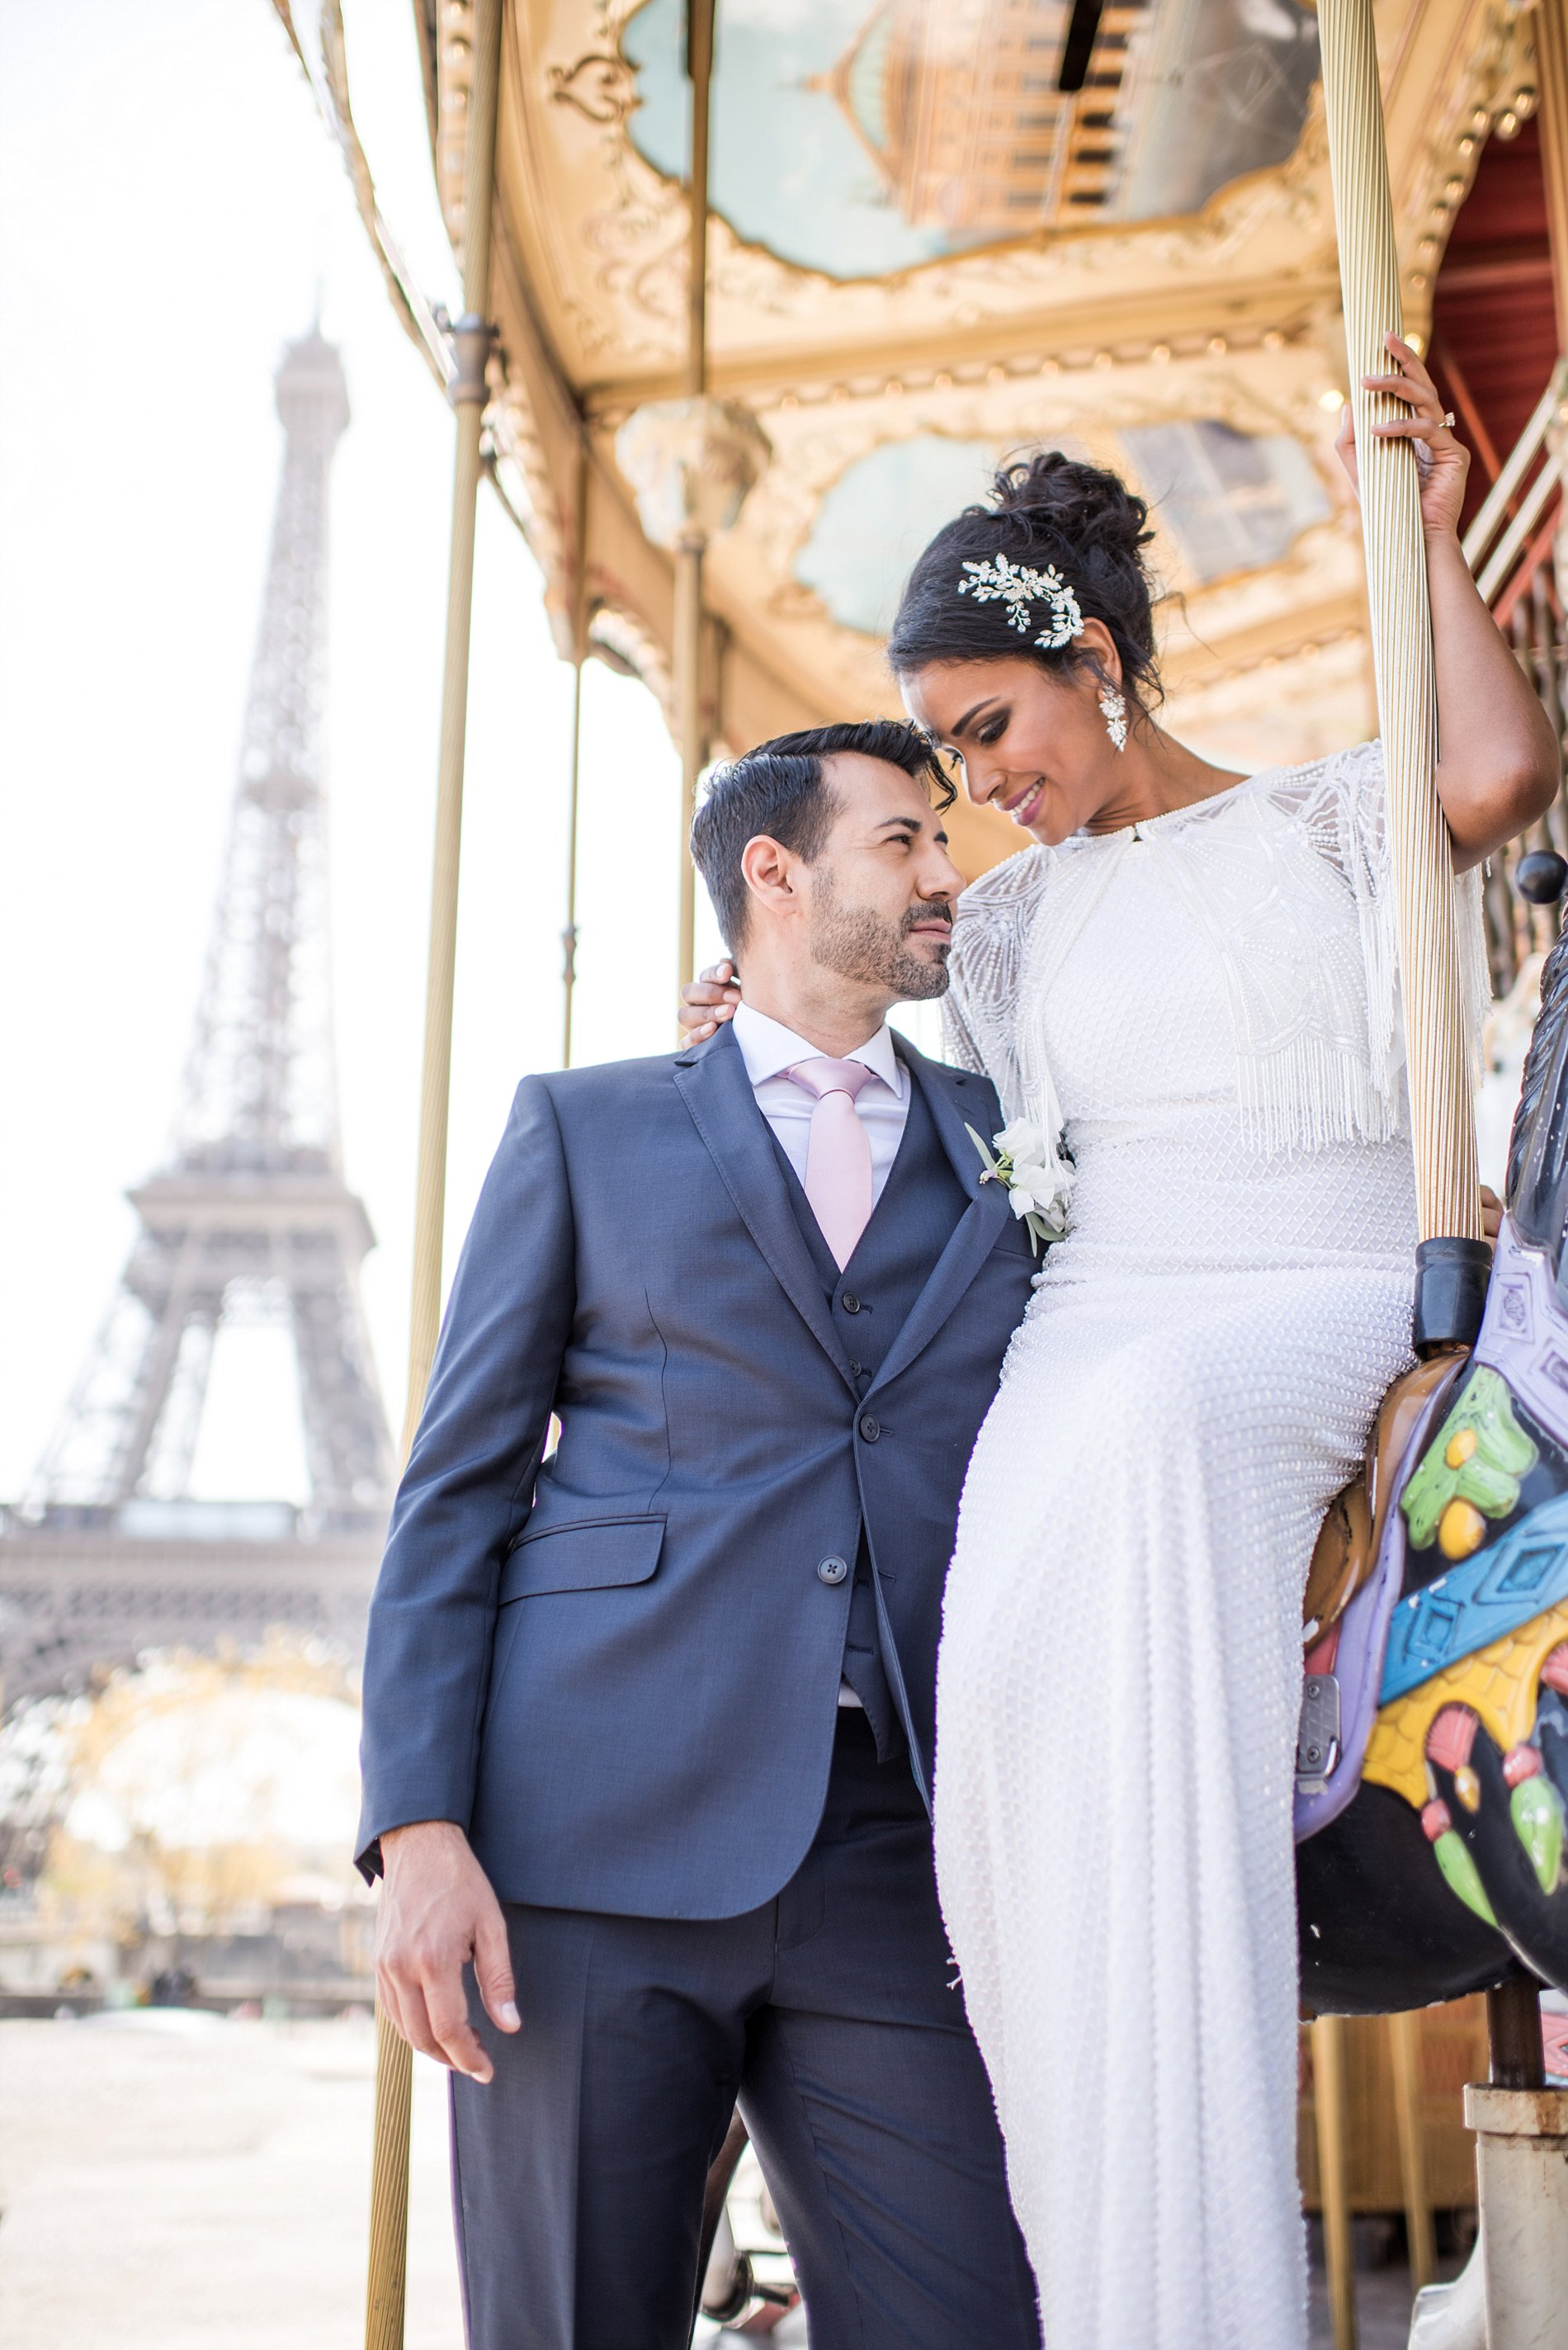 Paris elopement wedding photography by Jane Beadnell Photography-56